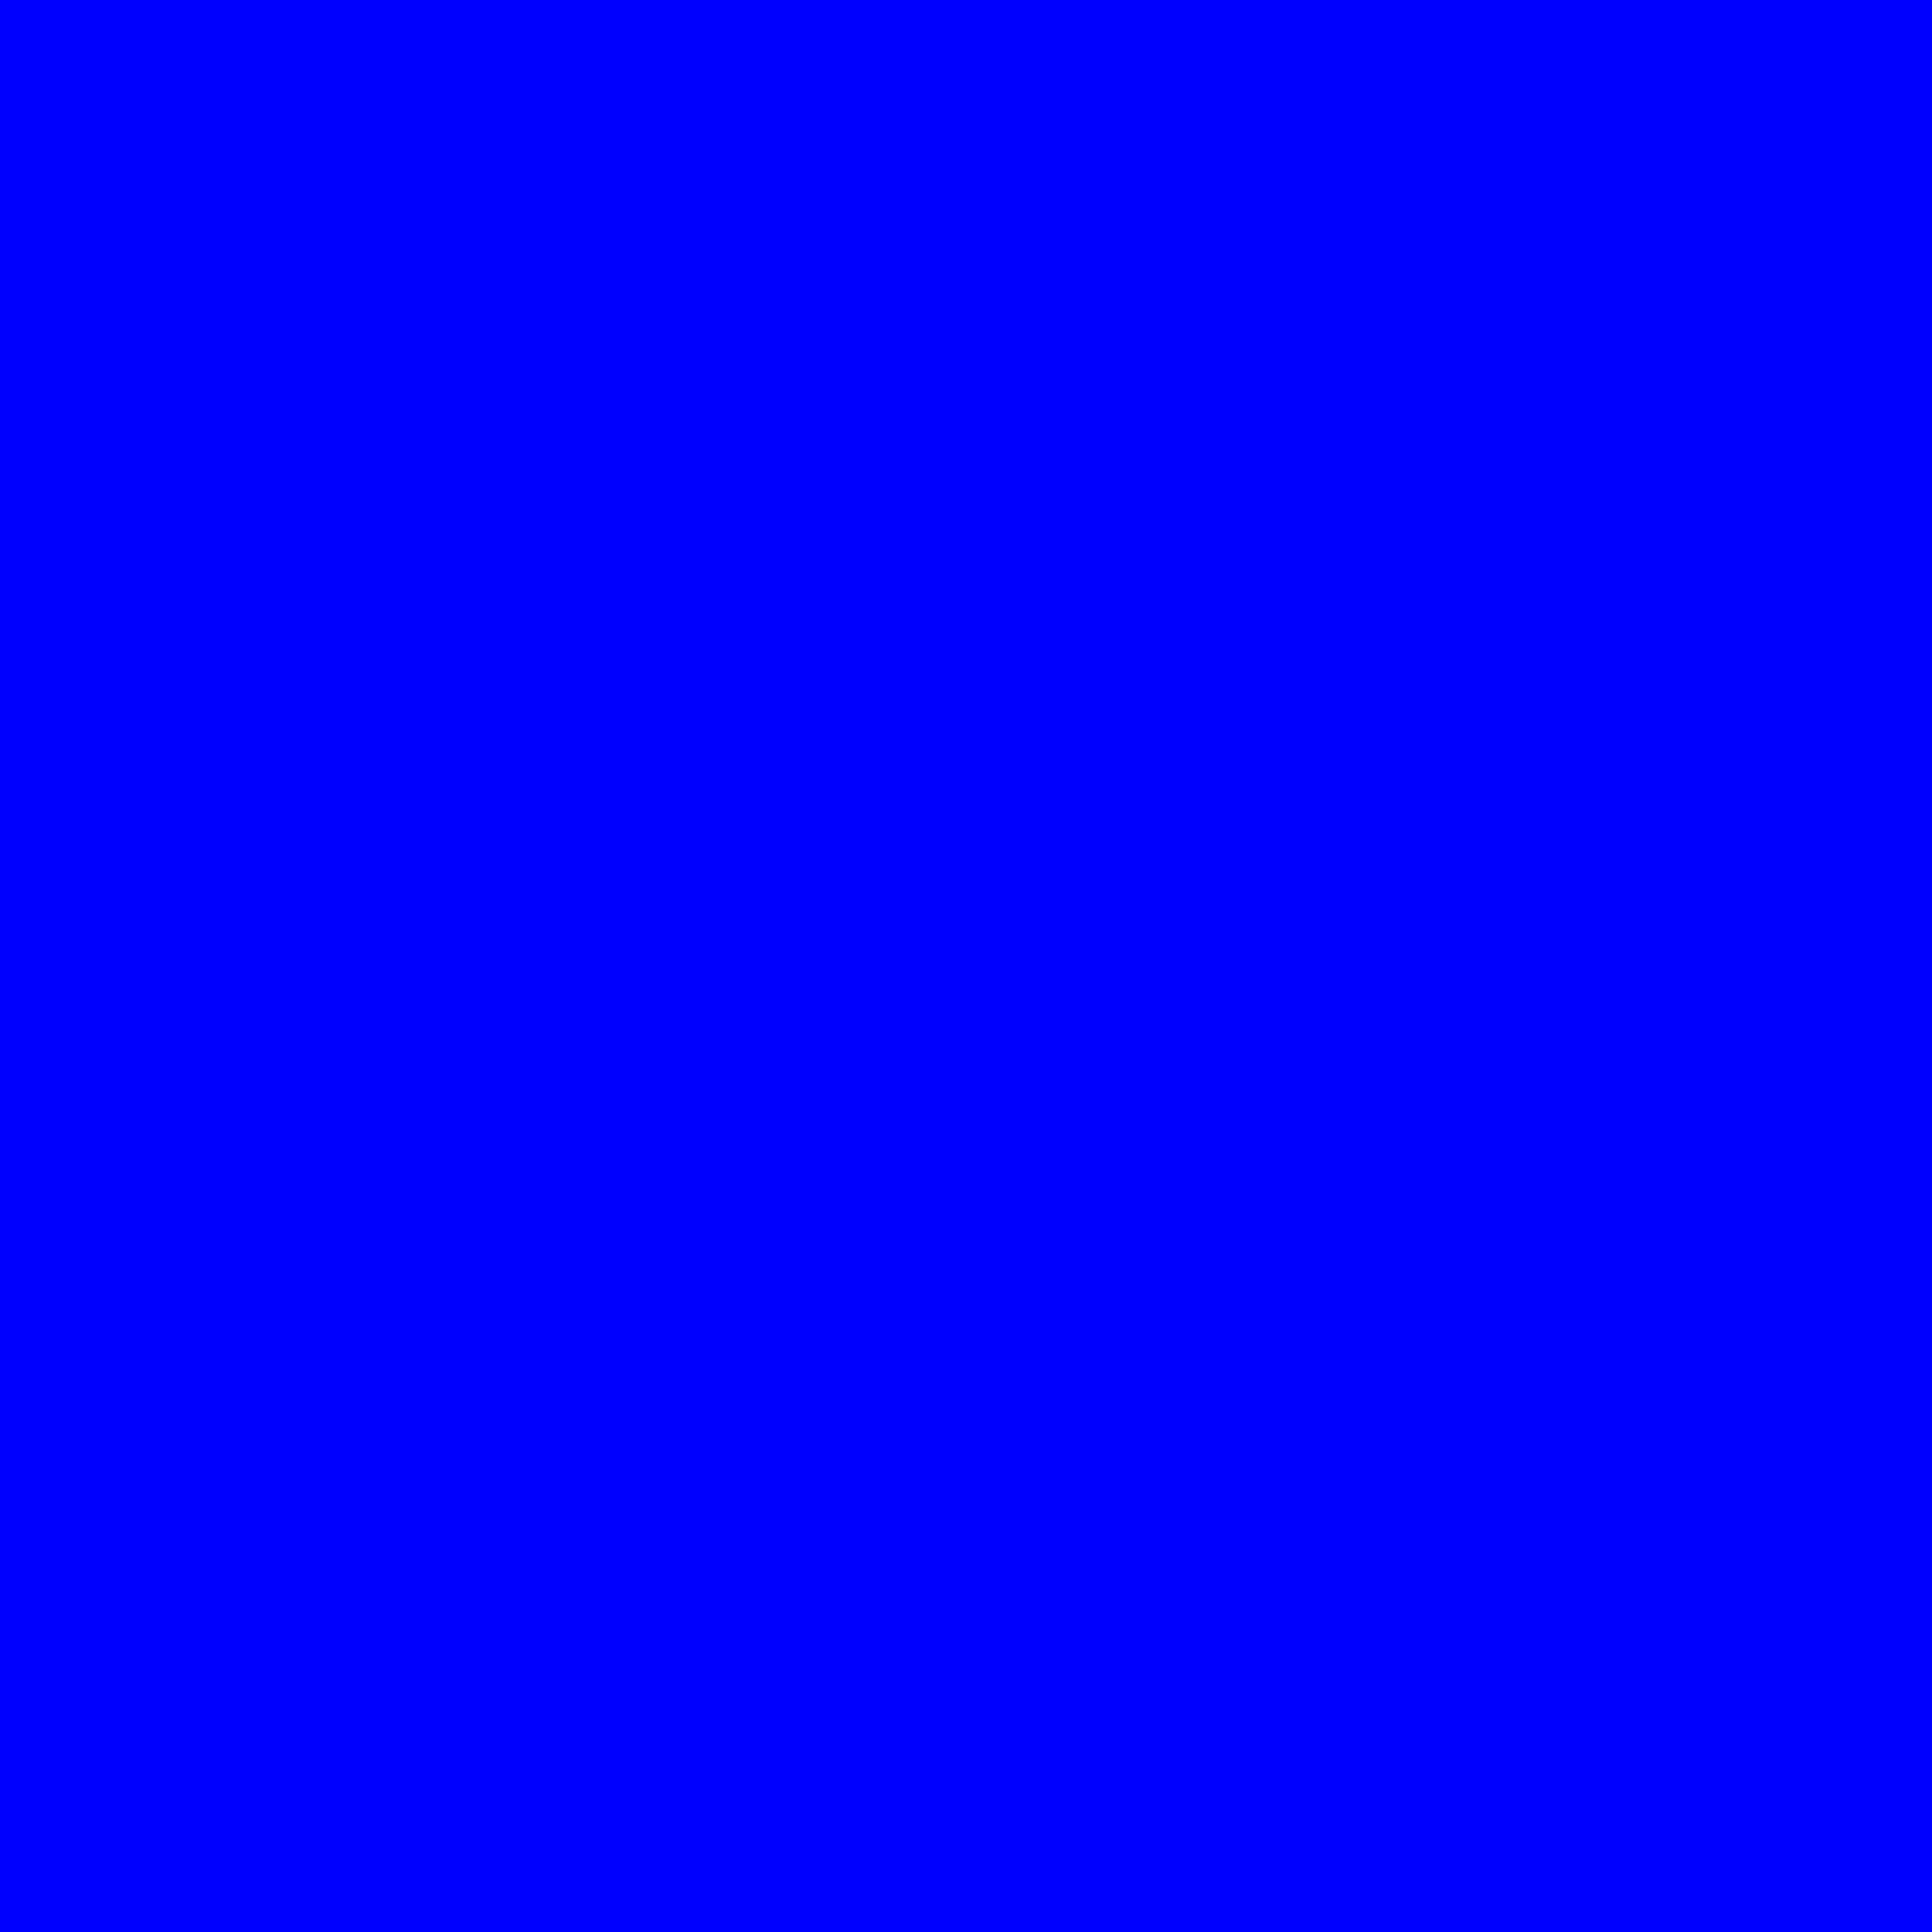 2732x2732 Blue Solid Color Background